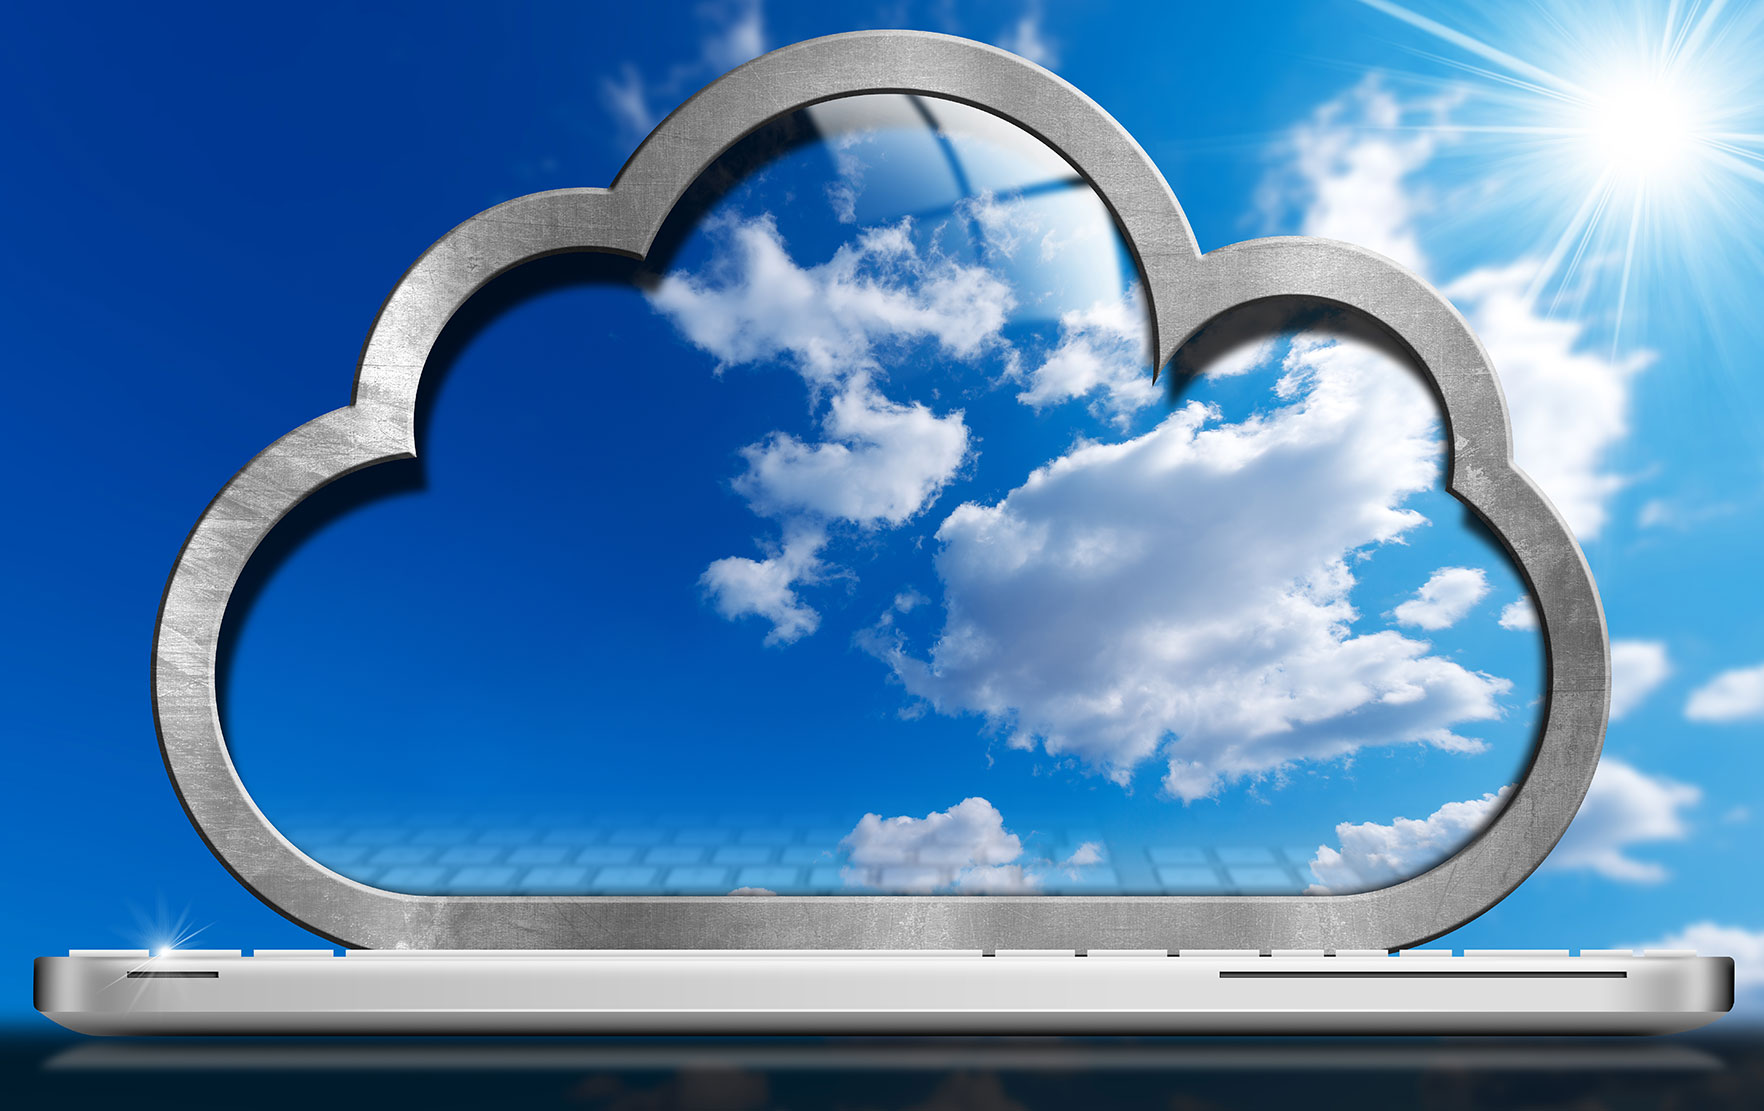 Cloud Services to Reach $236 Billion, Forrester Says